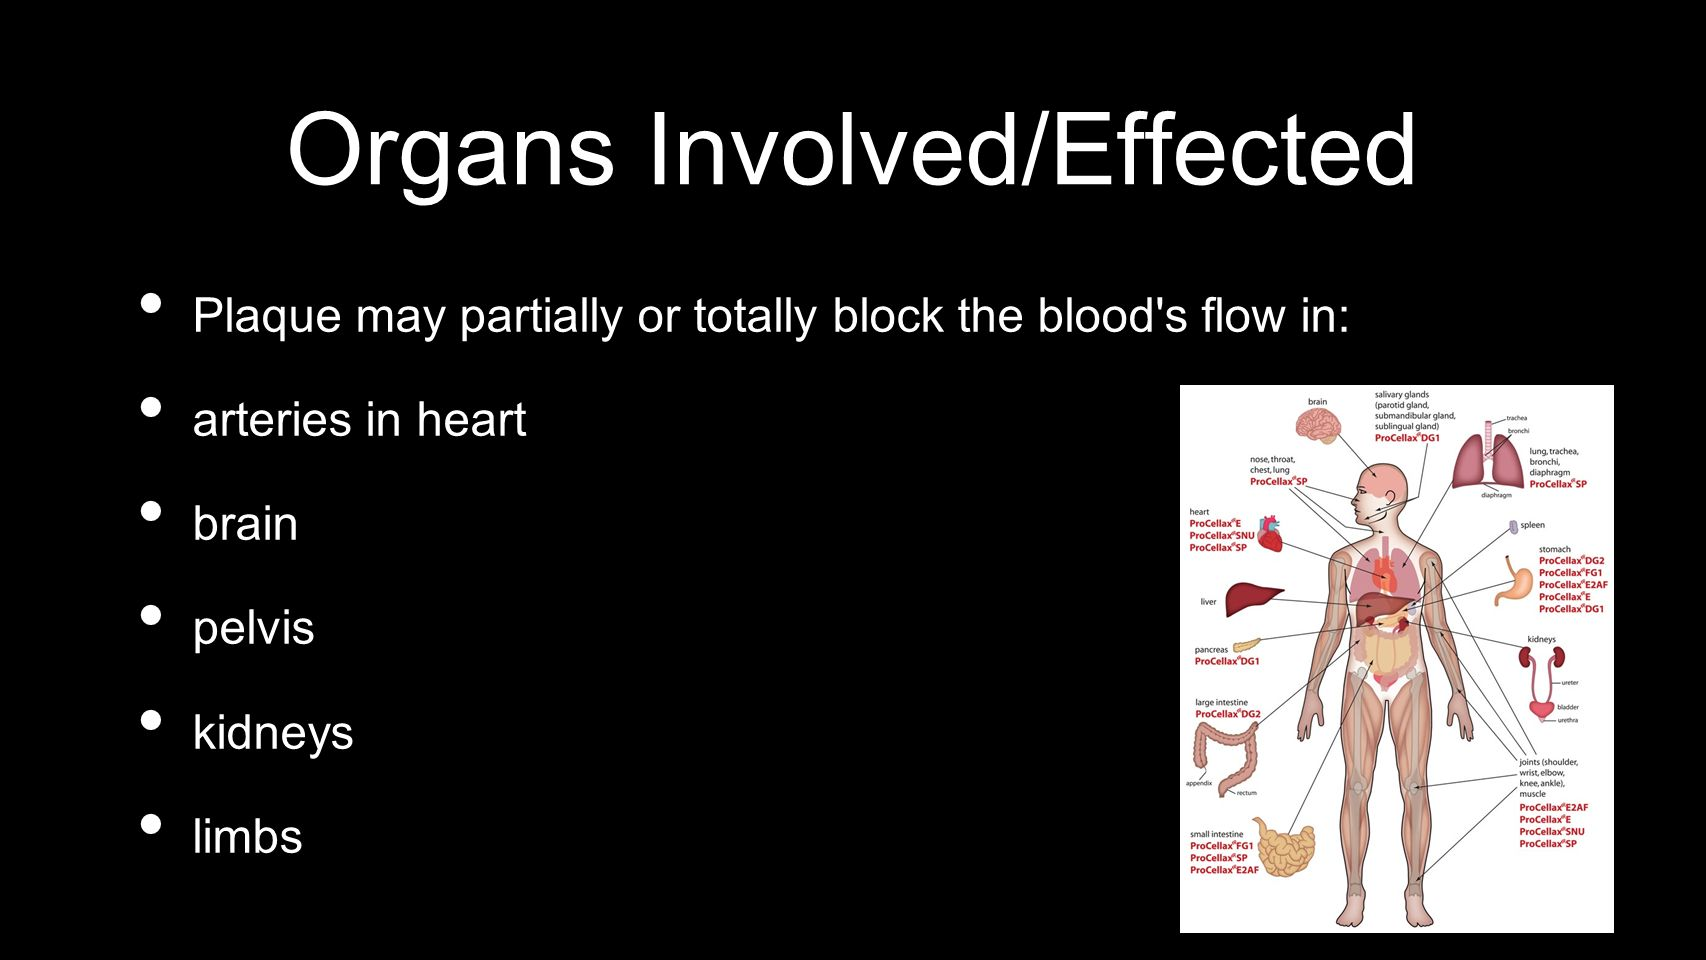 Organs Involved/Effected